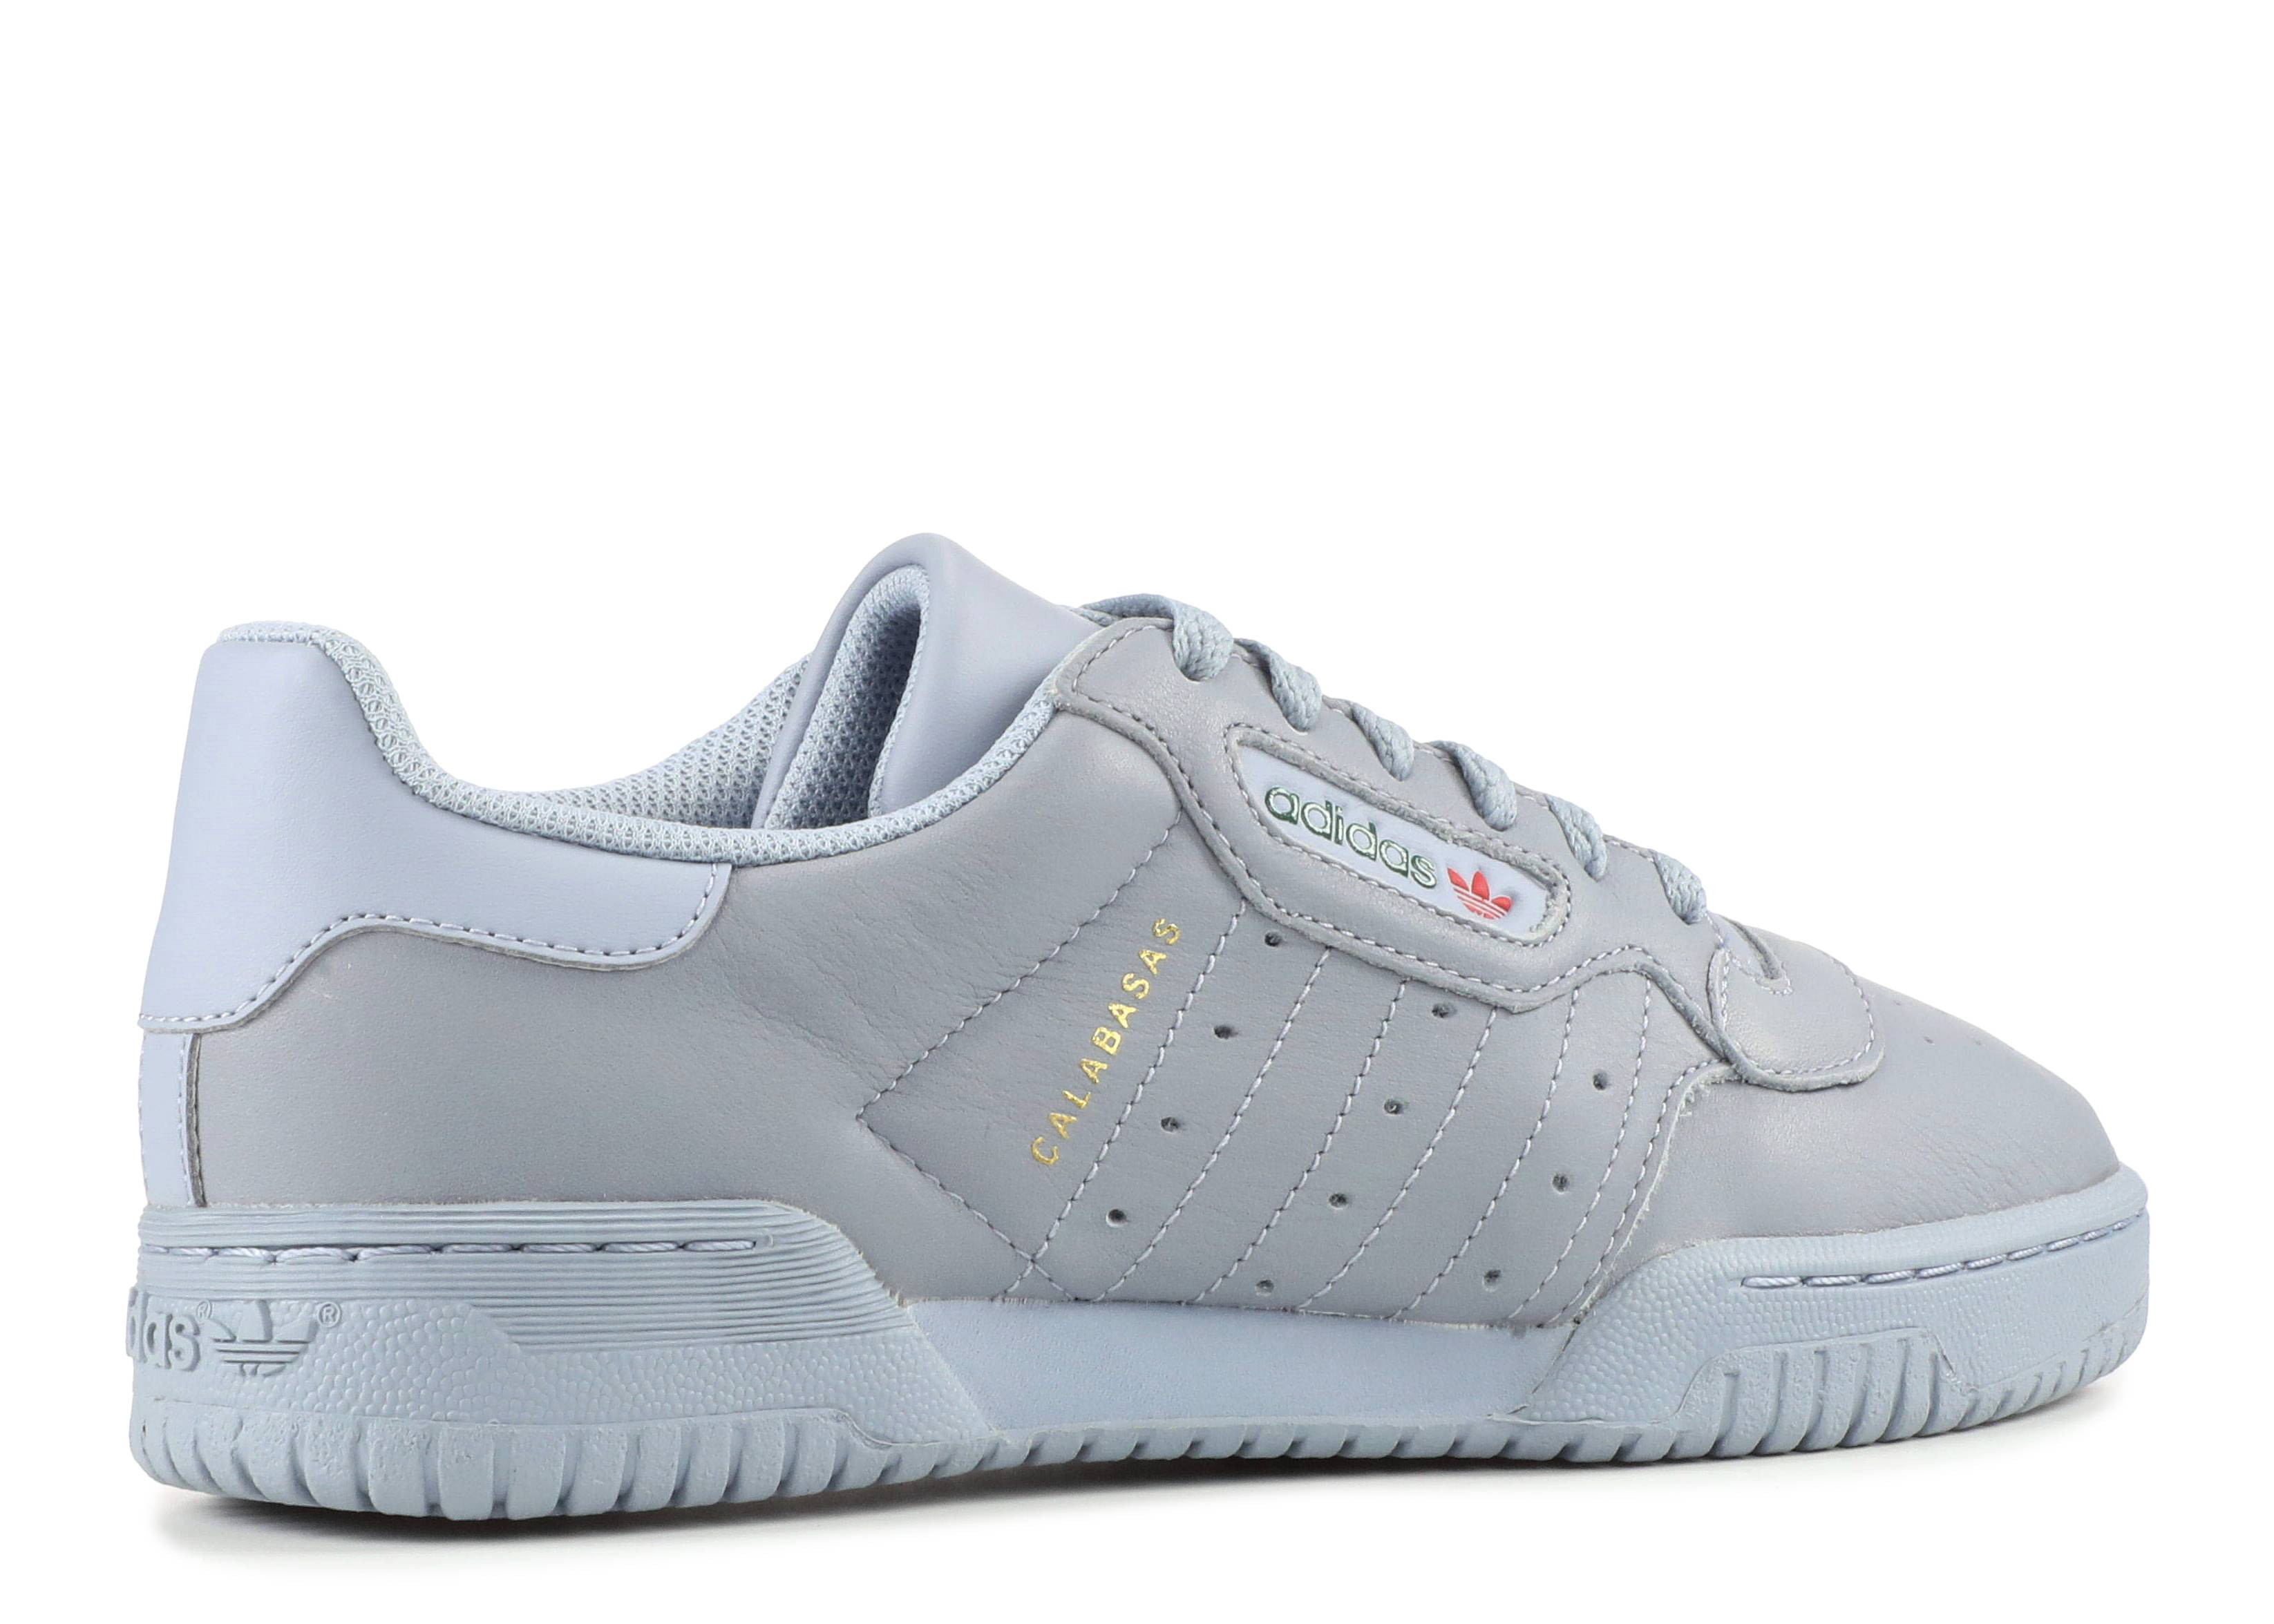 best website a8b82 e0f36 Yeezy Powerphase